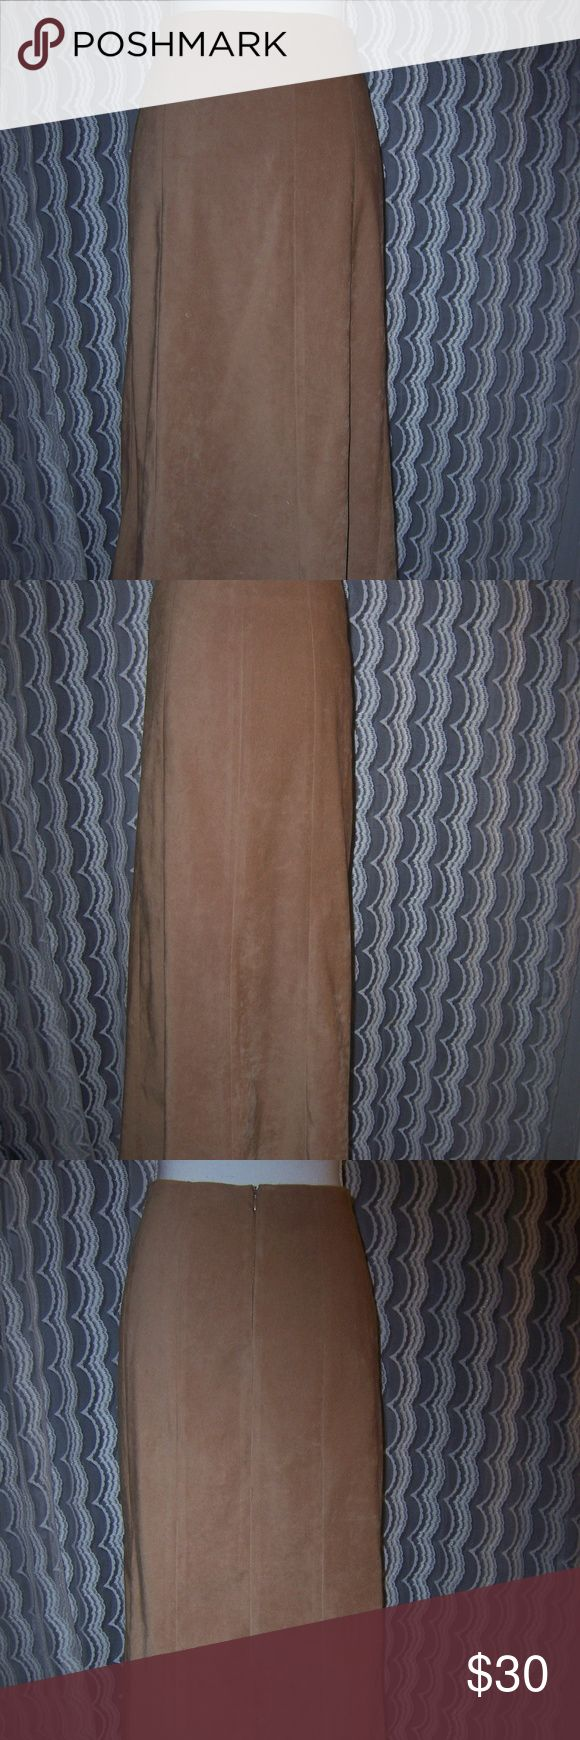 Cato Tan Suede Like Maxi Skirt Sz 8 Women's long tan maxi skirt Cato brand  Size 8 Soft suede like fabric  Polyester / spandex blend  Skirt is unlined but photo 5 shows the backside of fabric which has a gold color to it  Back zipper closure  Perfect for upcoming cooler weather ! Measures about 36 inches long waist to hemline  Measures about 15 1/2 inches across or 31 inches around at the waist  Hips measure about  20 inches across or 40 inches around Cato Skirts Maxi